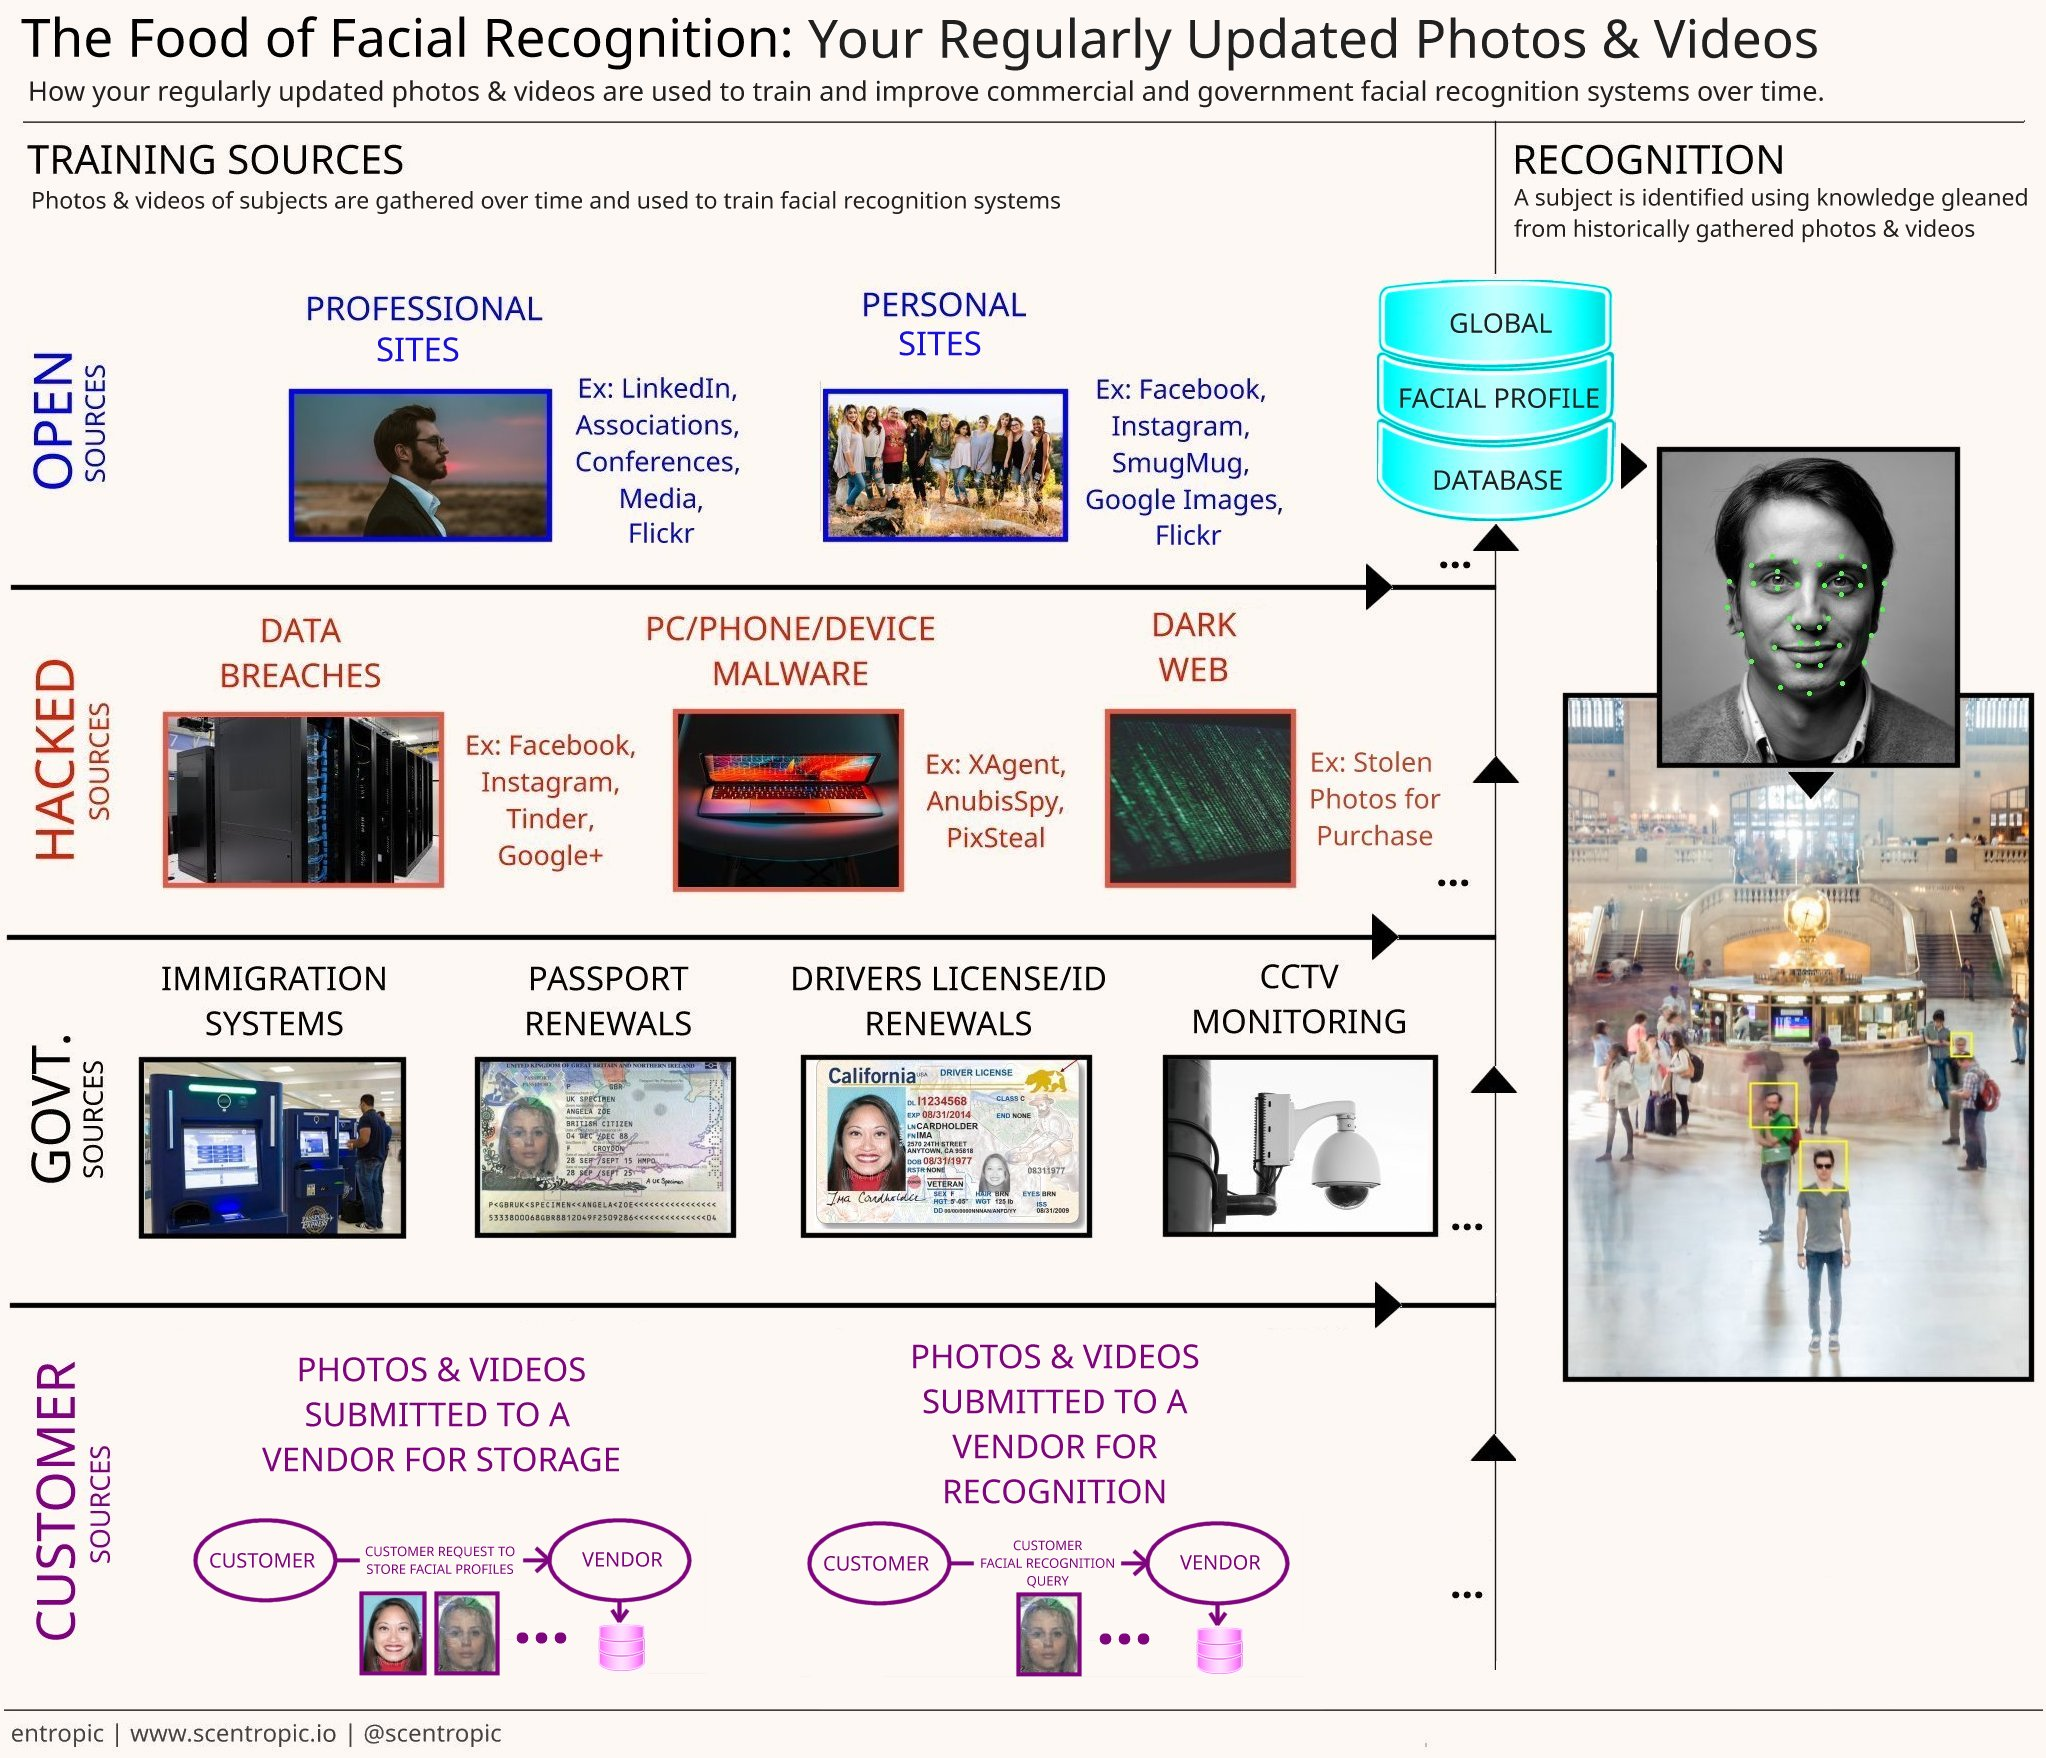 Sources of Amassed Facial Recognition Profiles